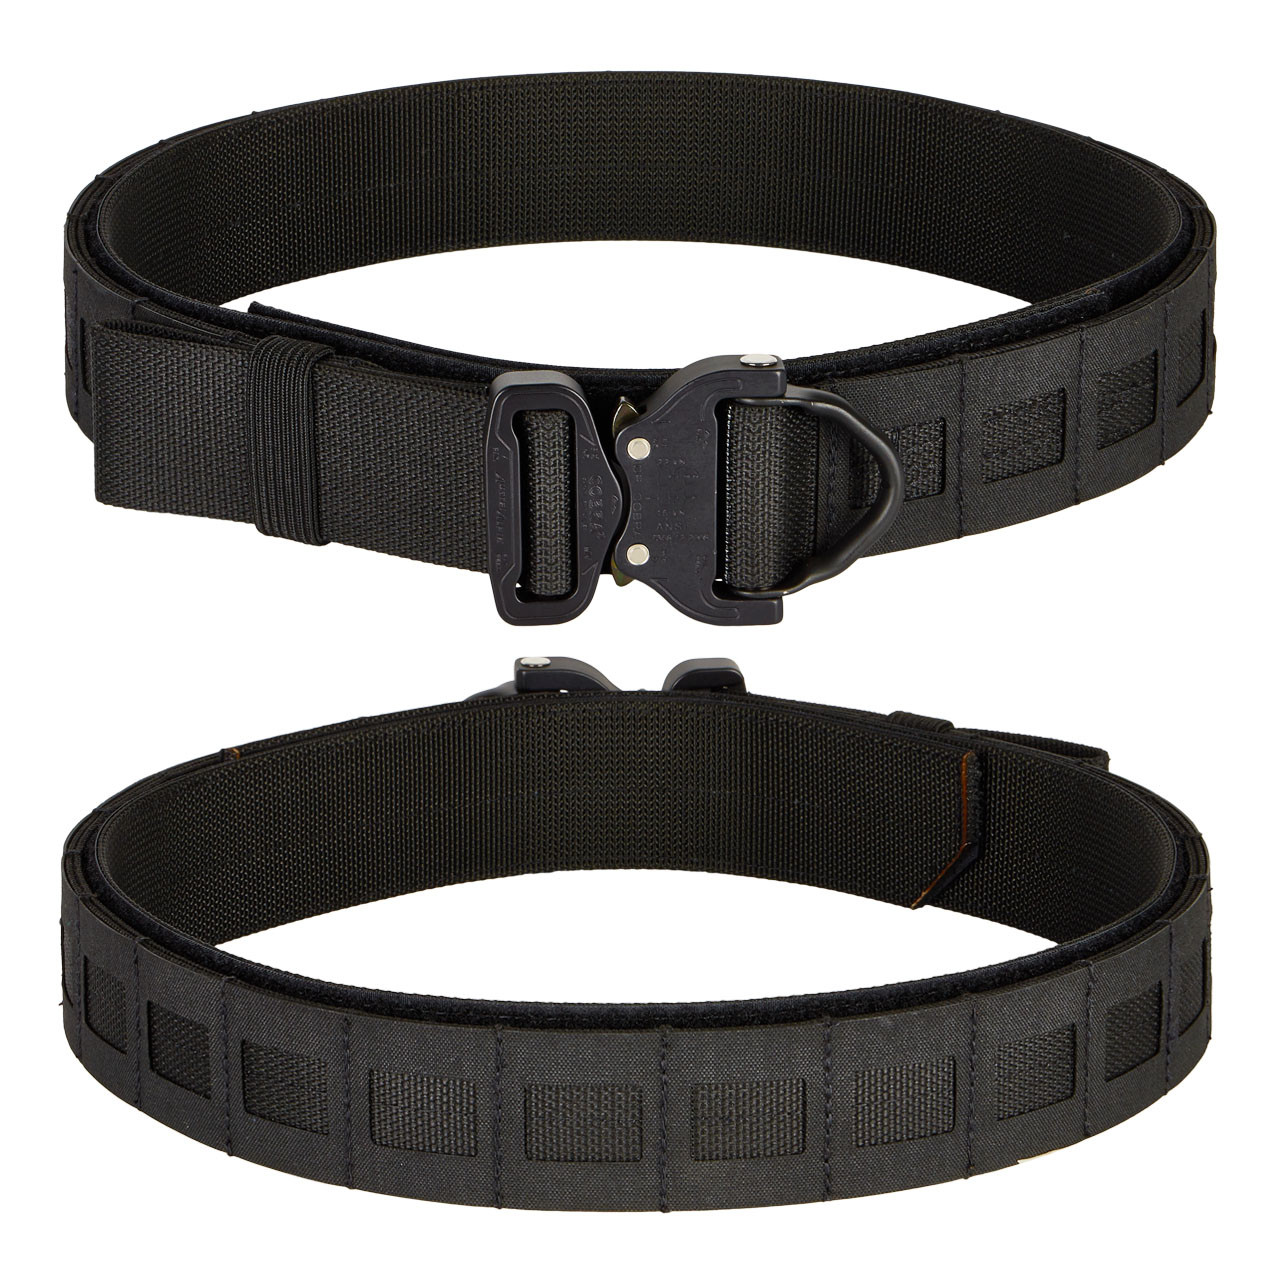 Black with Black Composite Material SMU Belt